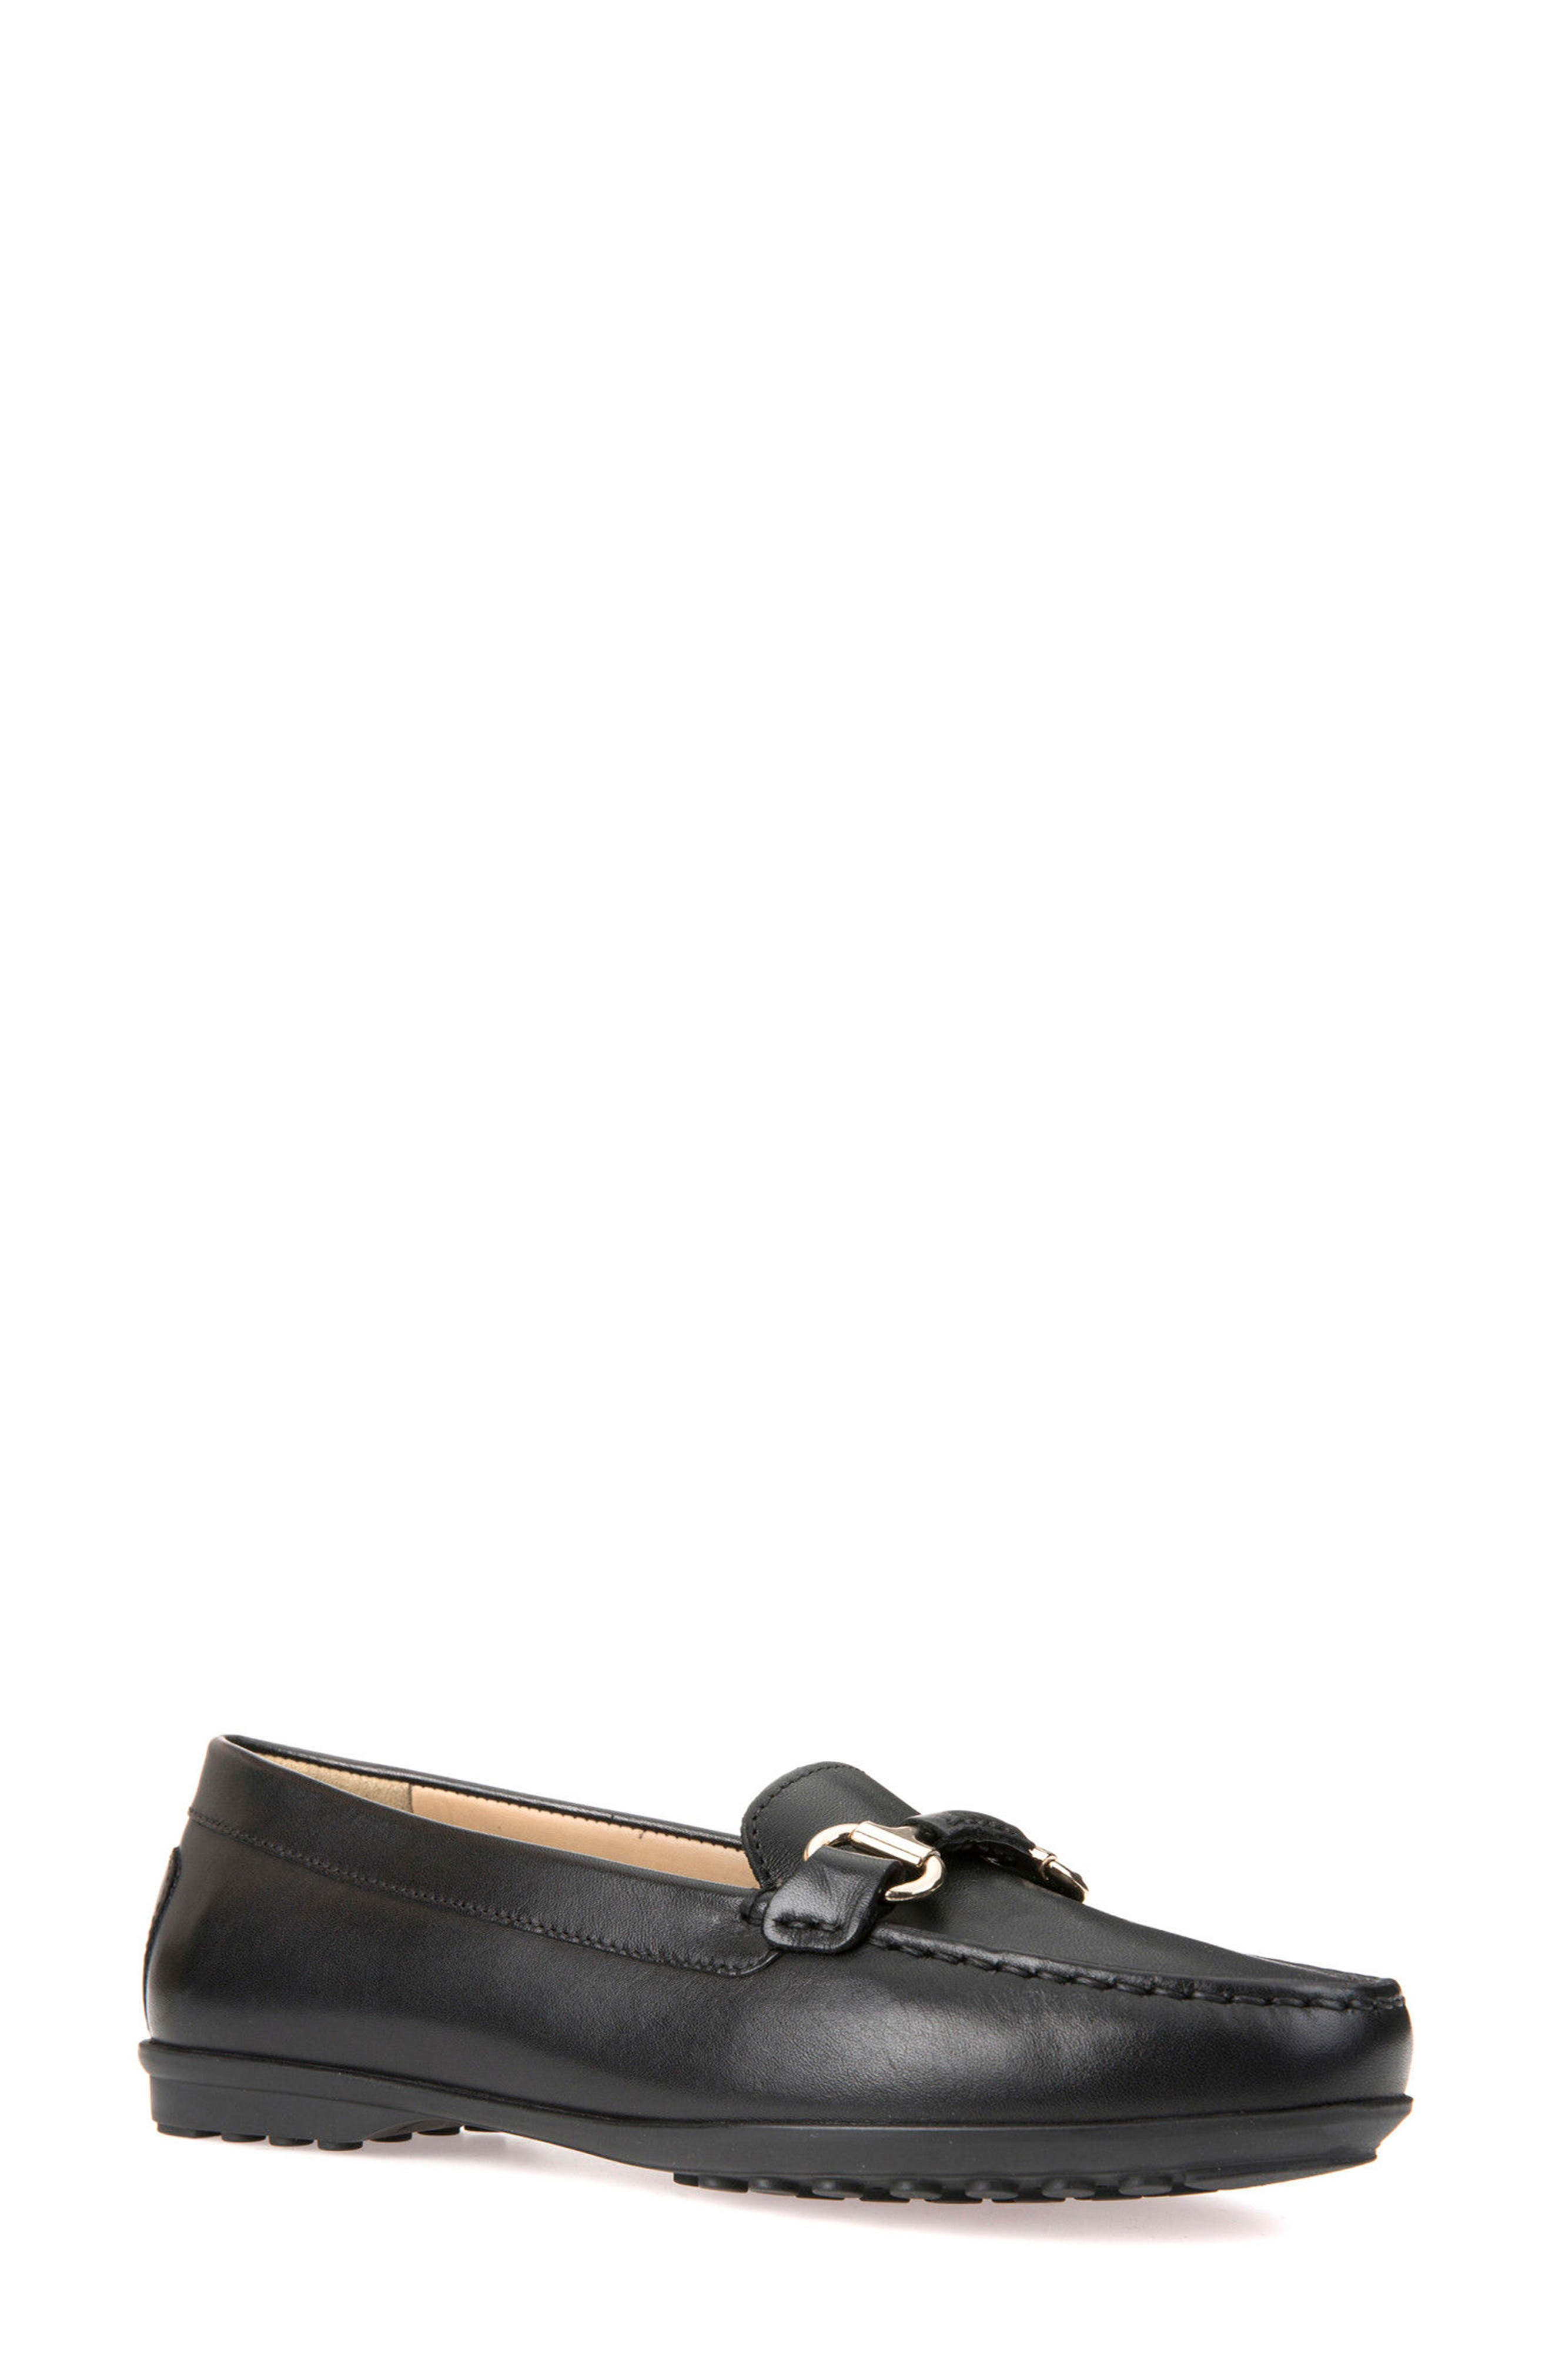 Elidia Buckle Loafer,                             Main thumbnail 1, color,                             001